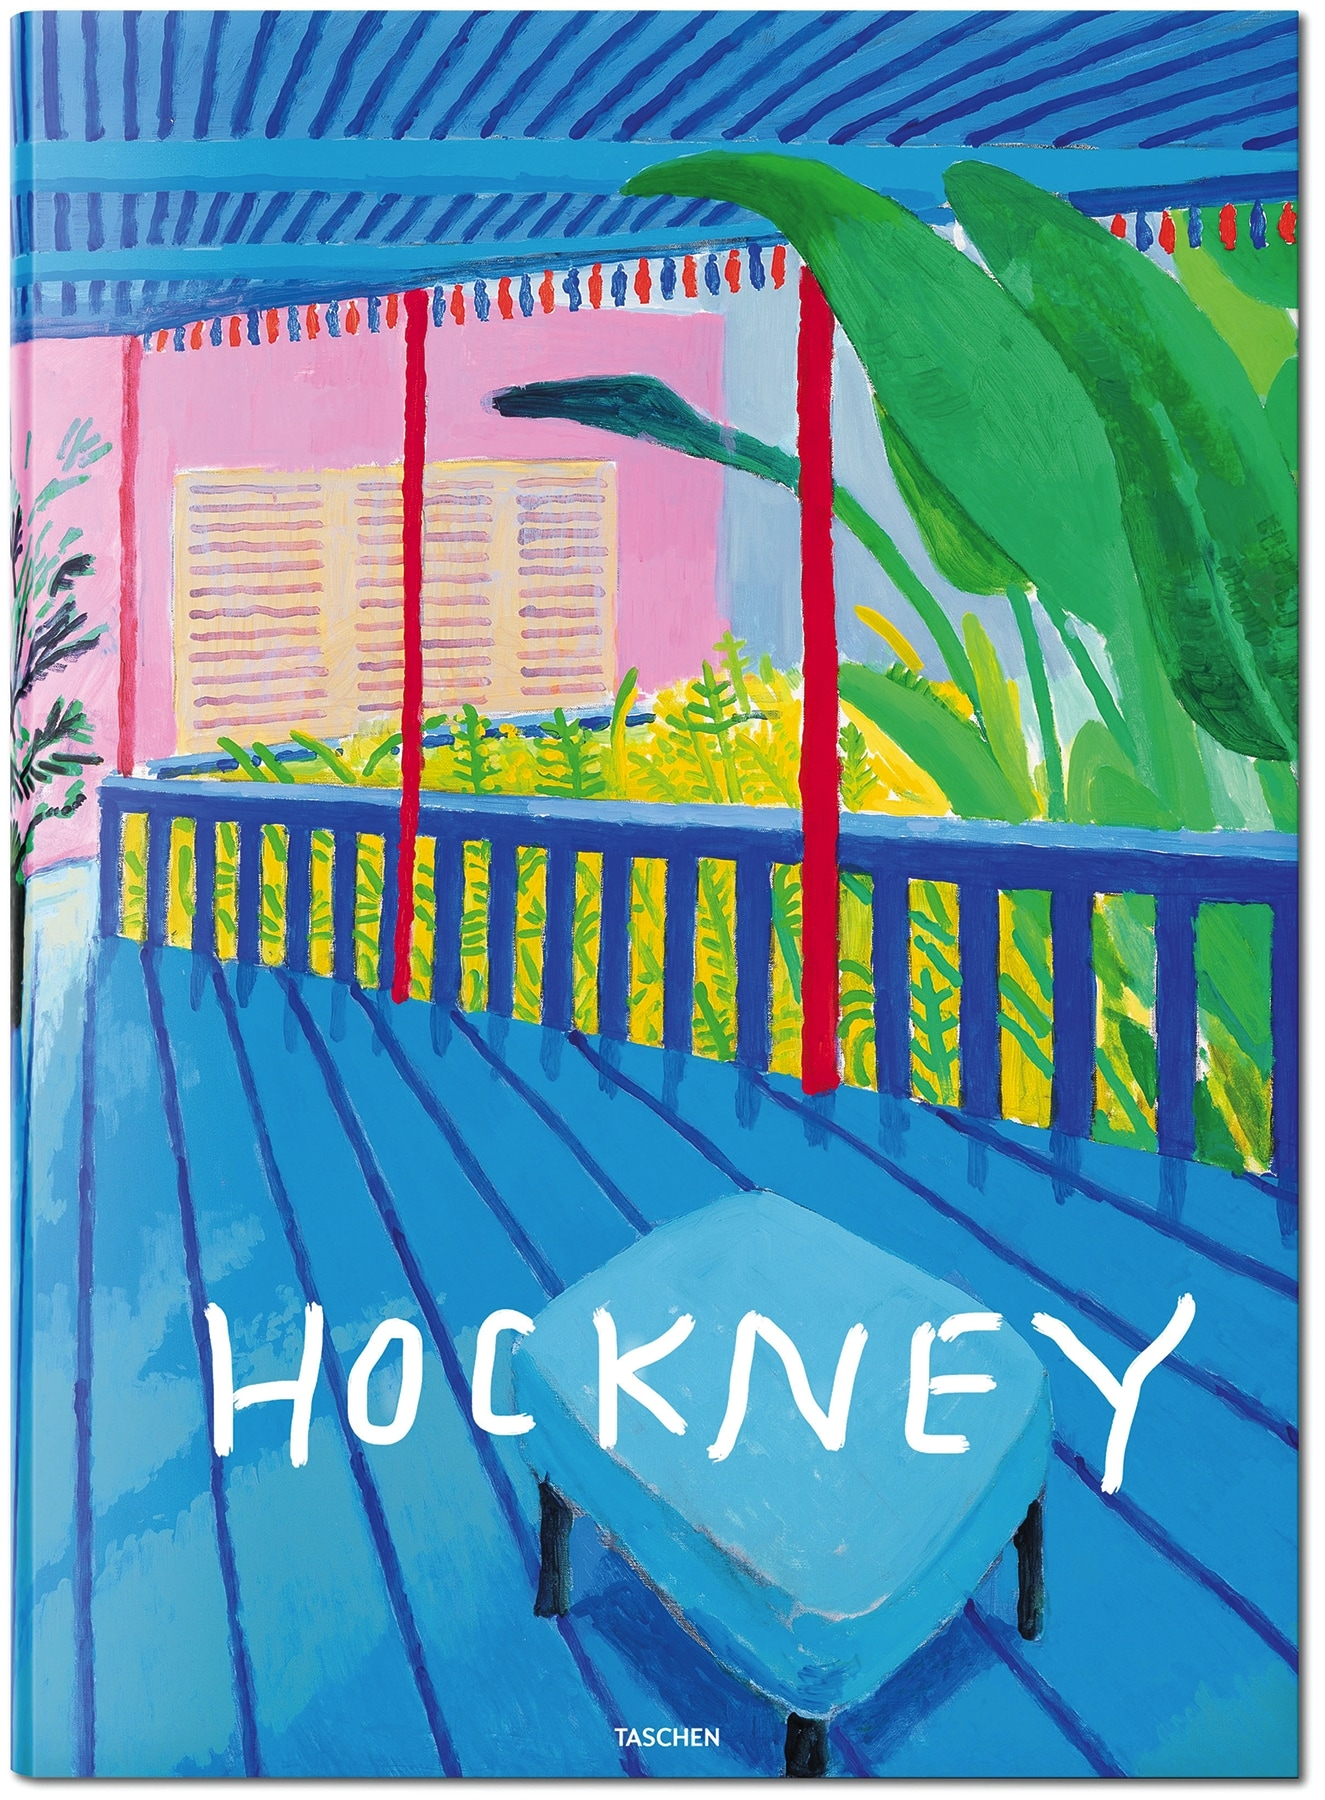 HOCKNEY_SU_GB_3D_02641.jpg